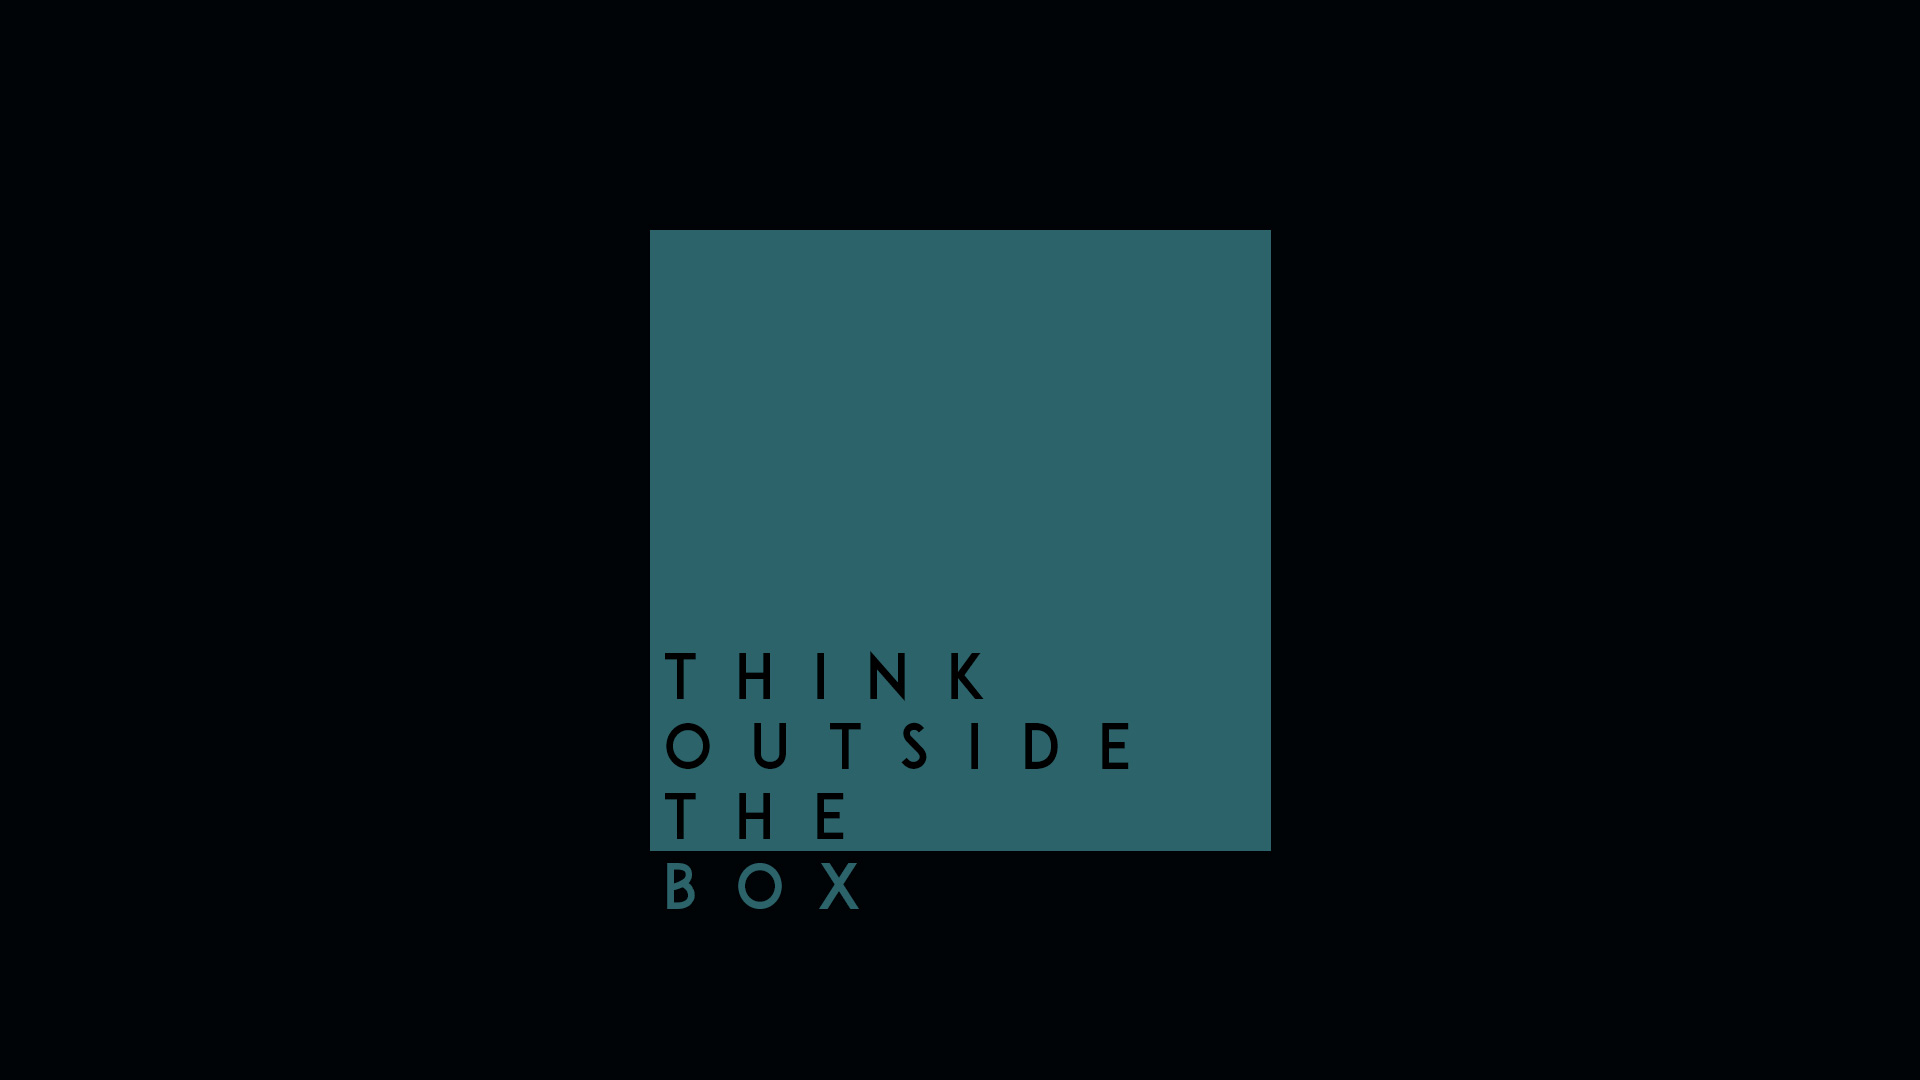 Think Outside The Box Hd Hd Typography 4k Wallpapers